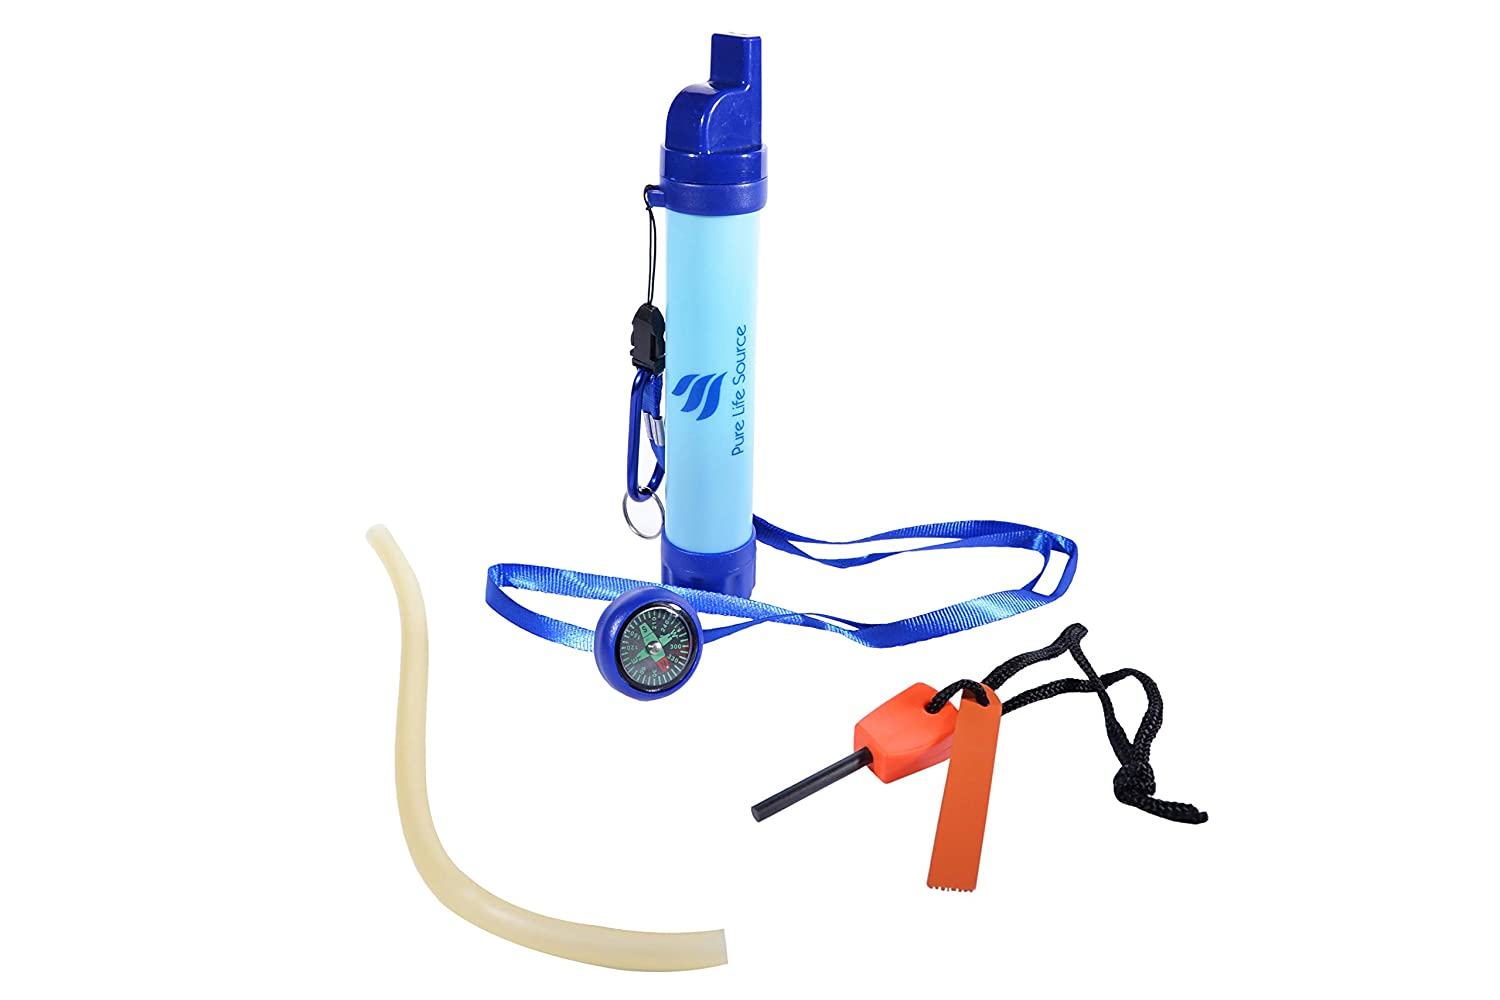 WATER FILTER STRAW – Survival Pack – Approx 2,000 liters of Pure Safe Drinking Water. Includes Survival Accessories Pure Life Source a Portable Reusable Health Tool for Outdoor Activities